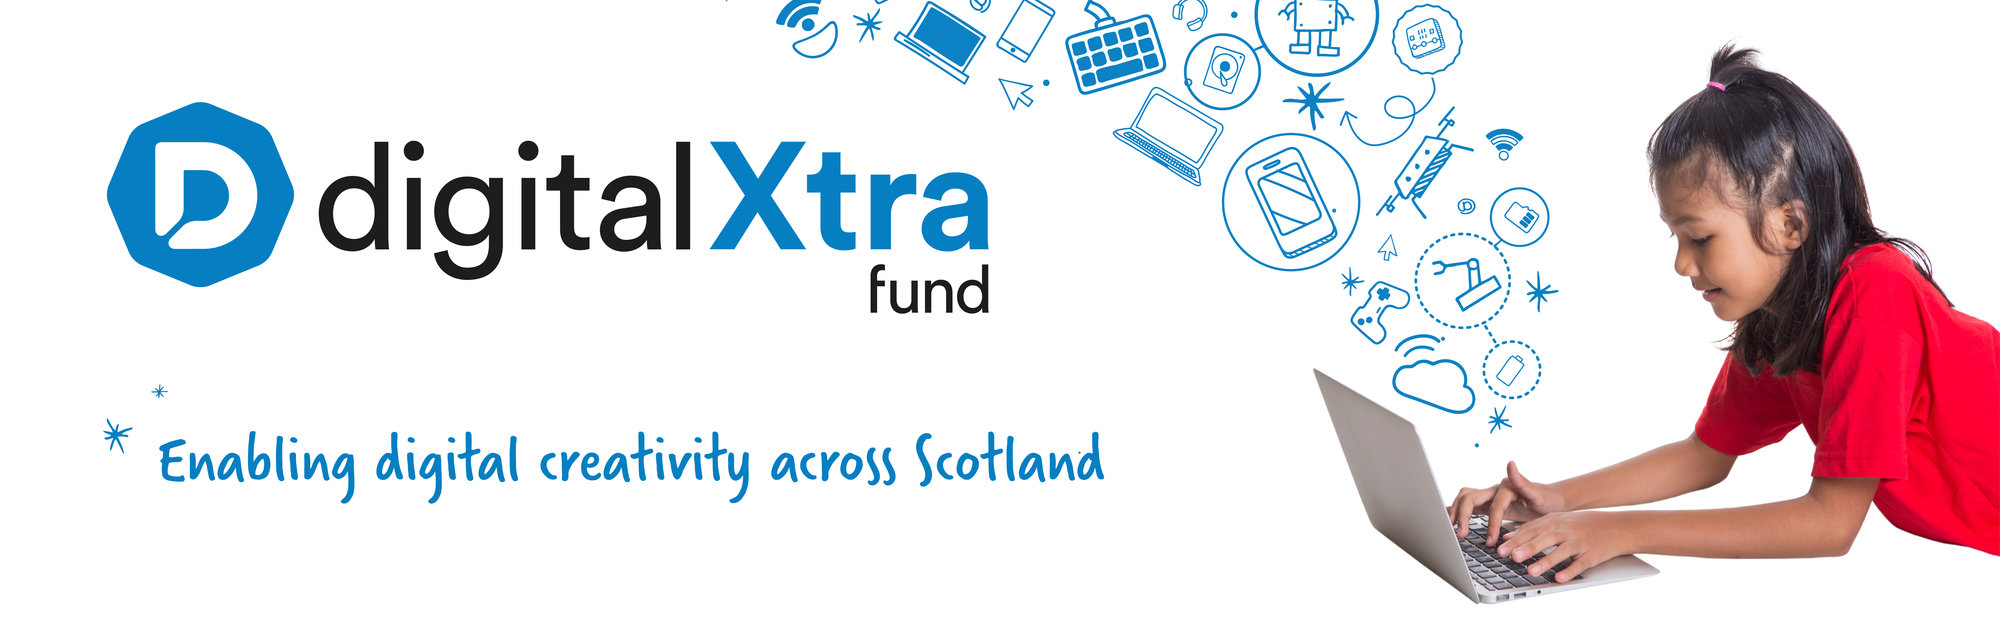 Digital Xtra Fund Web Banner - White